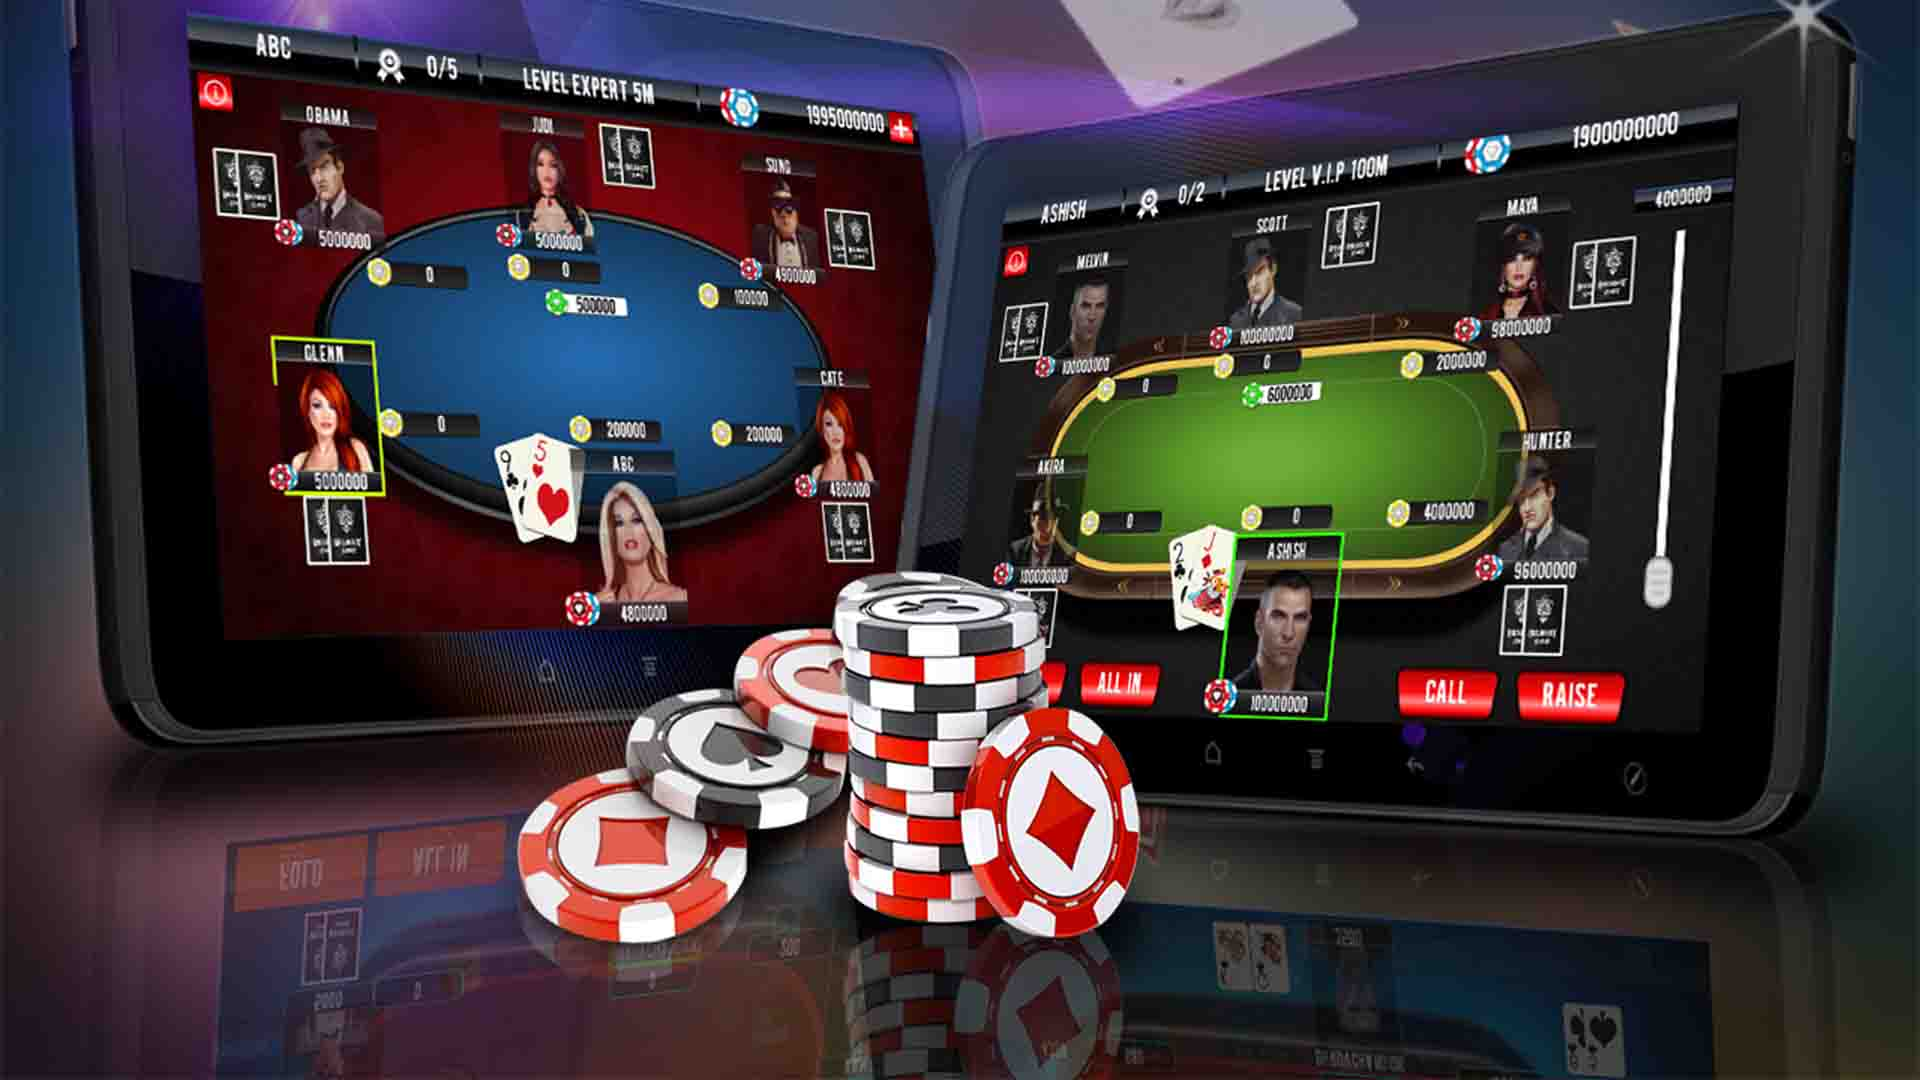 Enter the Online gambling site (situs judi online) and enjoy all the entertainment